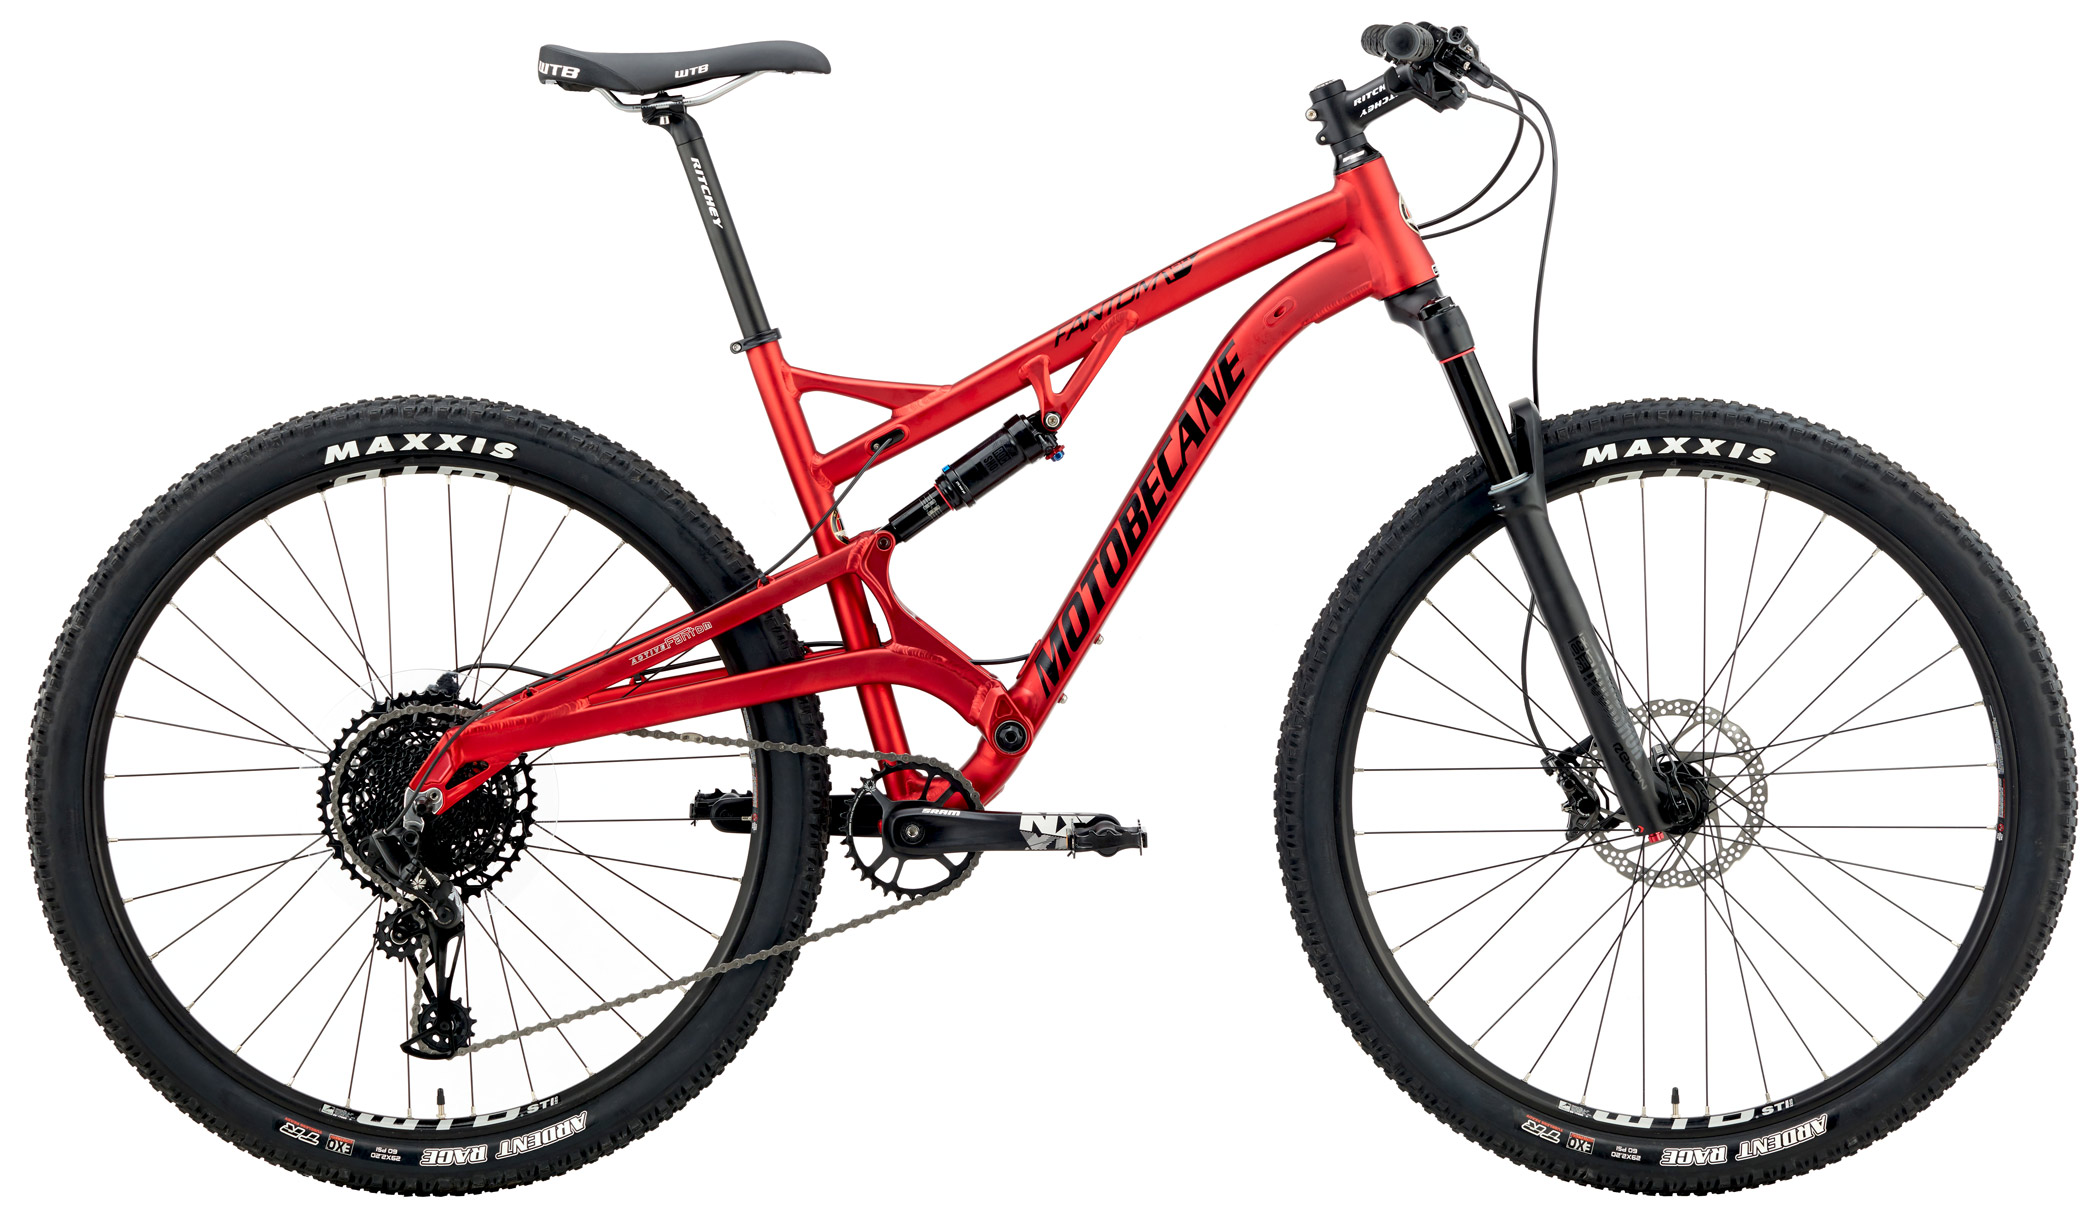 Bikes Motobecane Fantom 29 DS Eagle NX  Full Suspension Mountain Bike Image